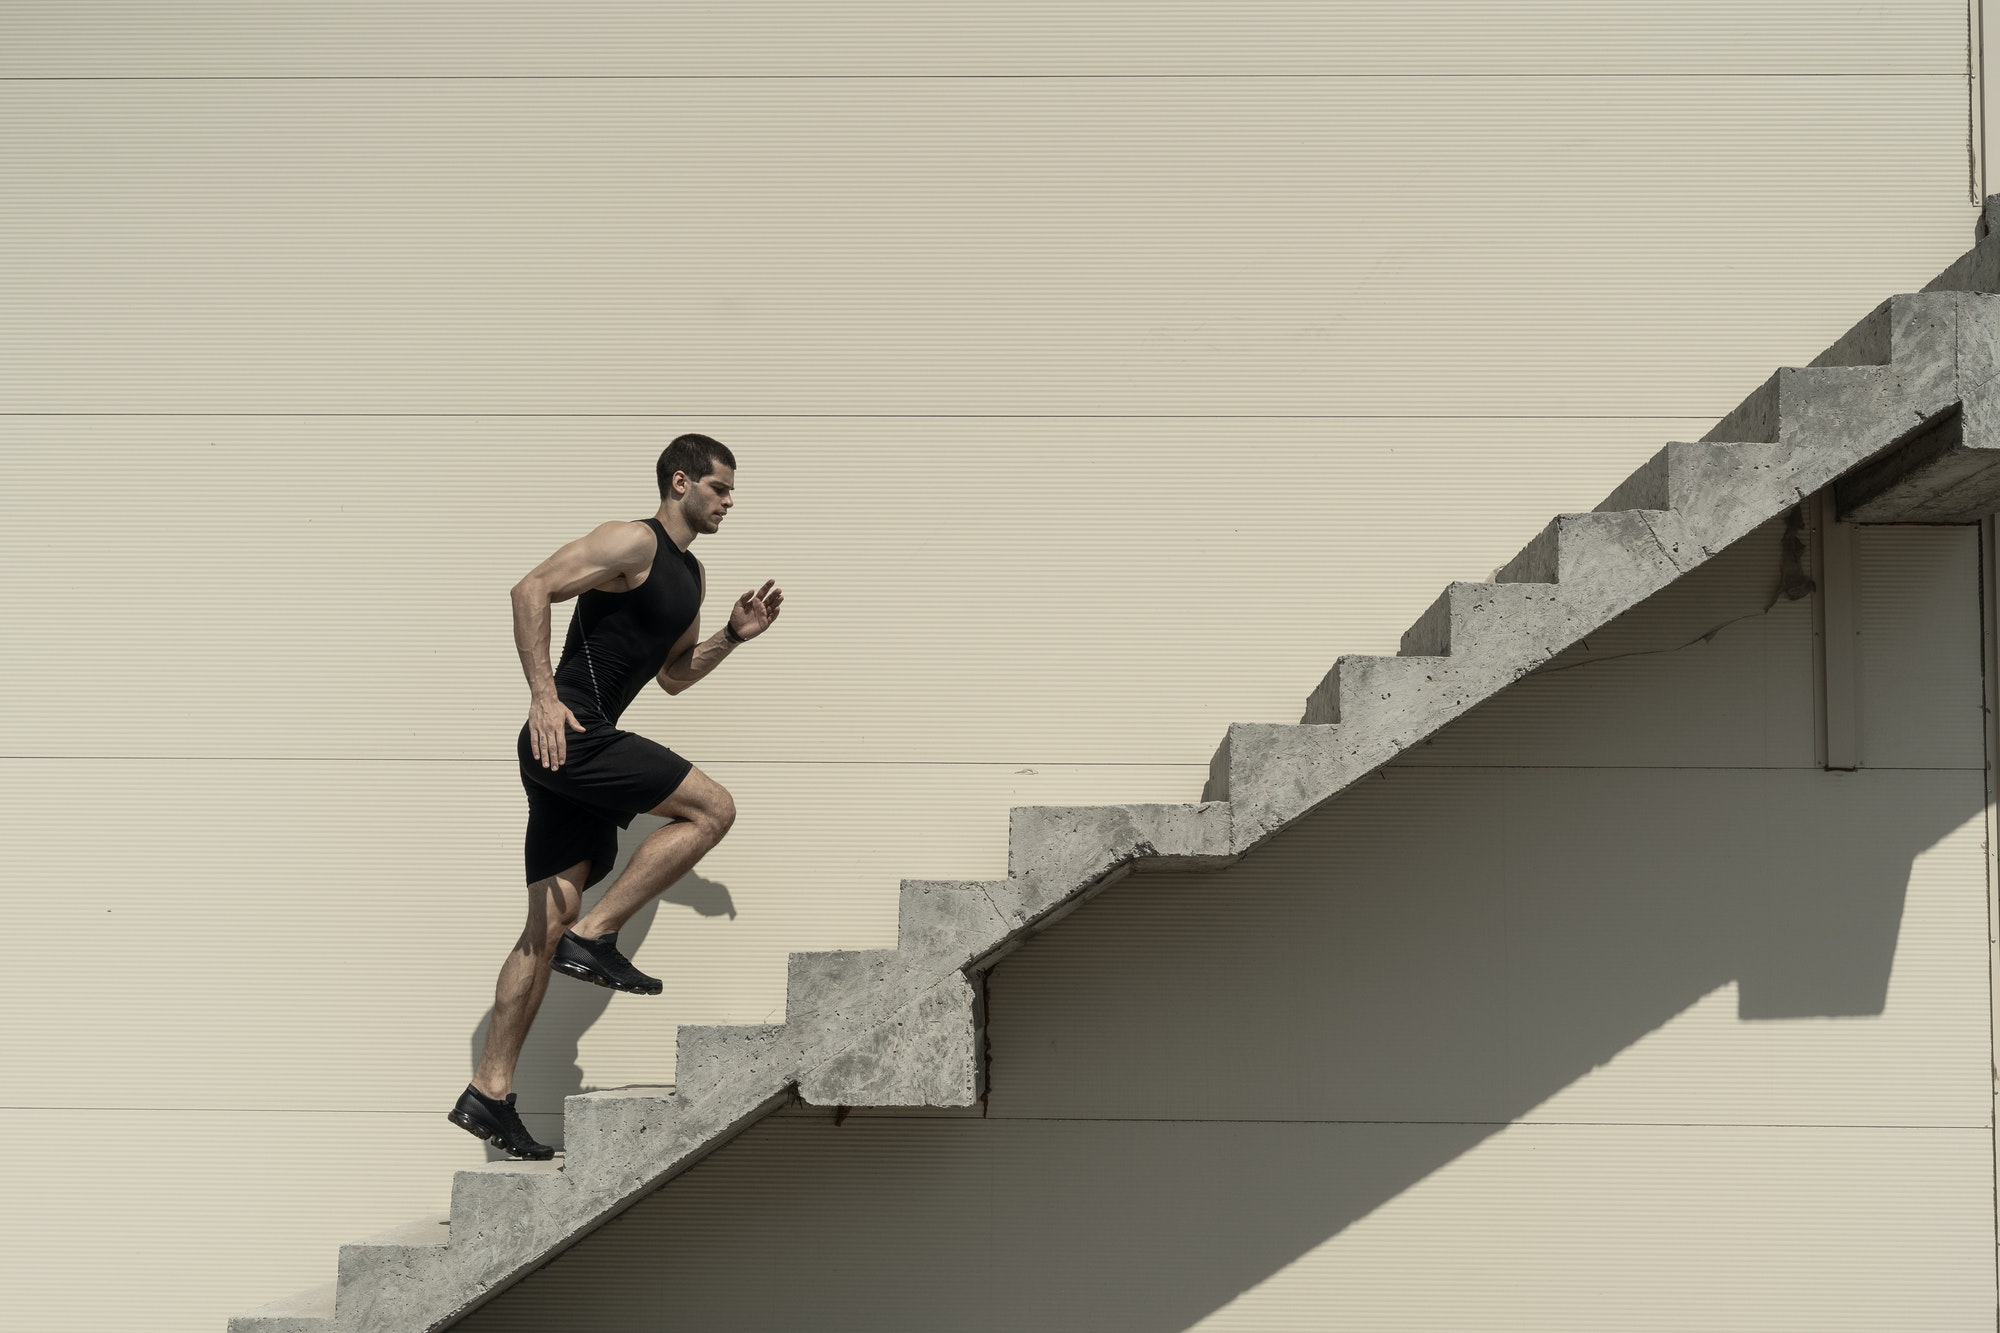 A man in gym wear running up stone stairs, overcoming a challenge